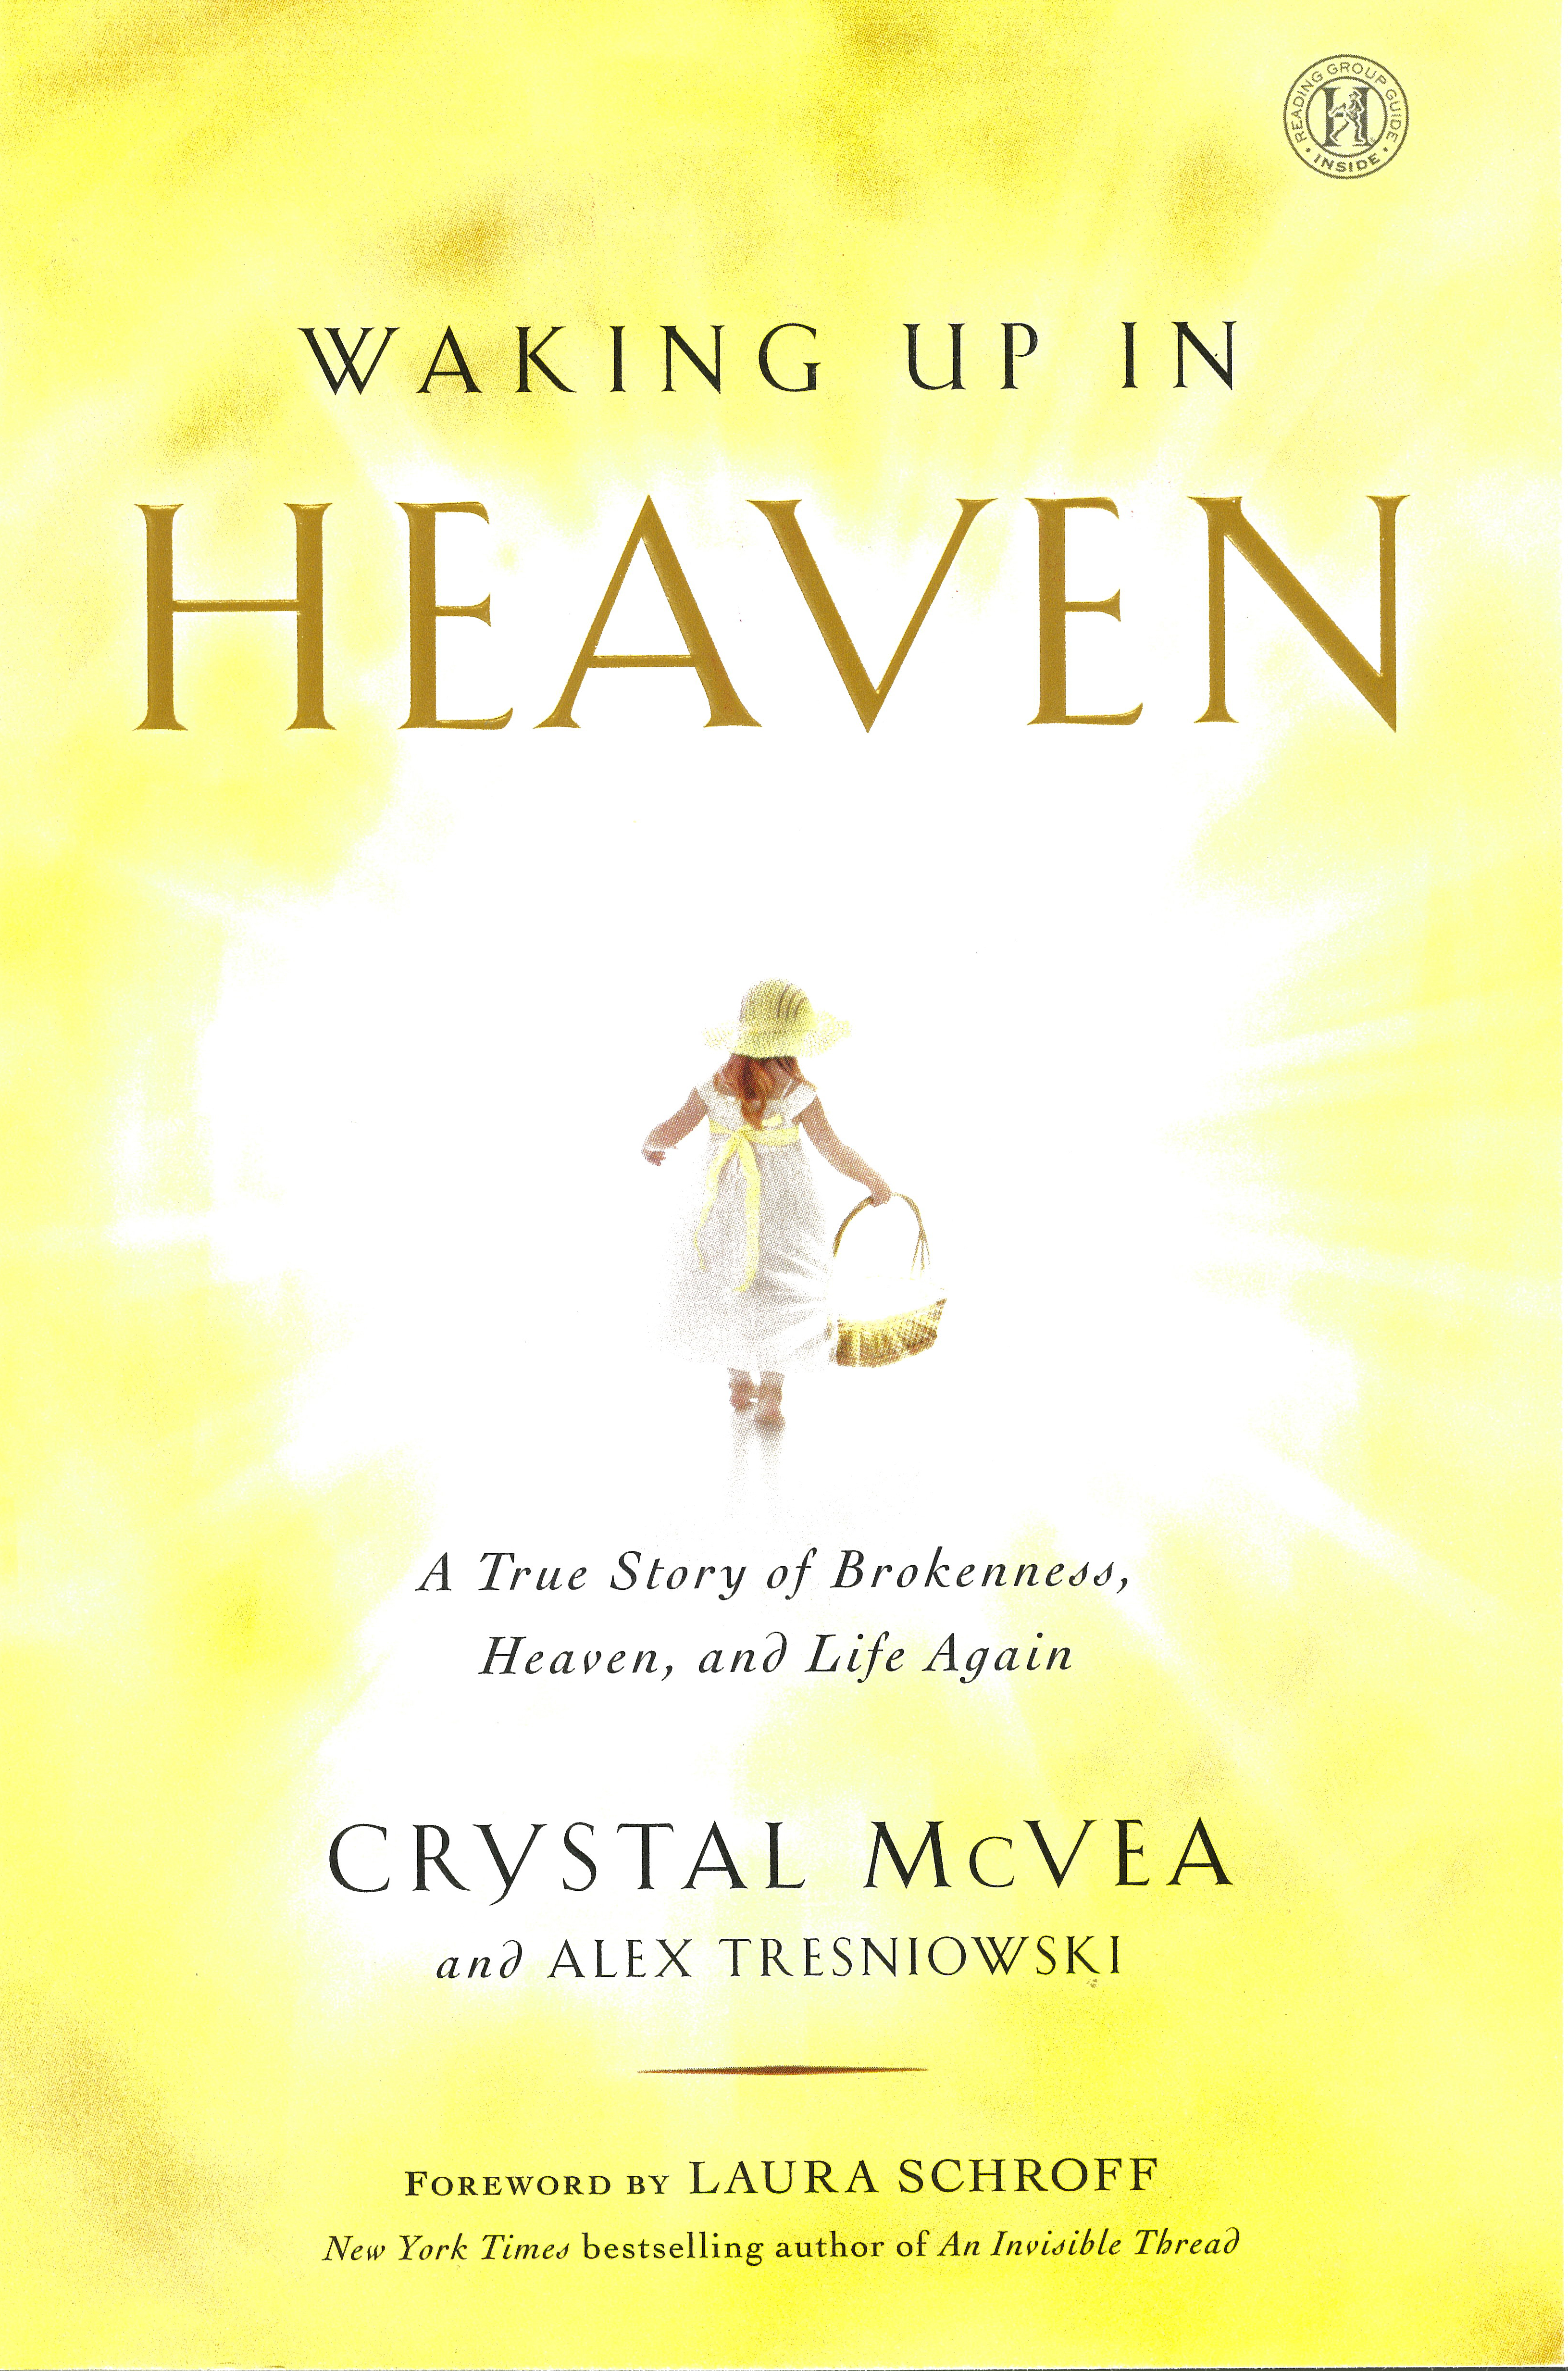 Waking Up in Heaven: A True Story of Brokenness, Heaven, and Life Again by Crystal McVea 108-9781476711874